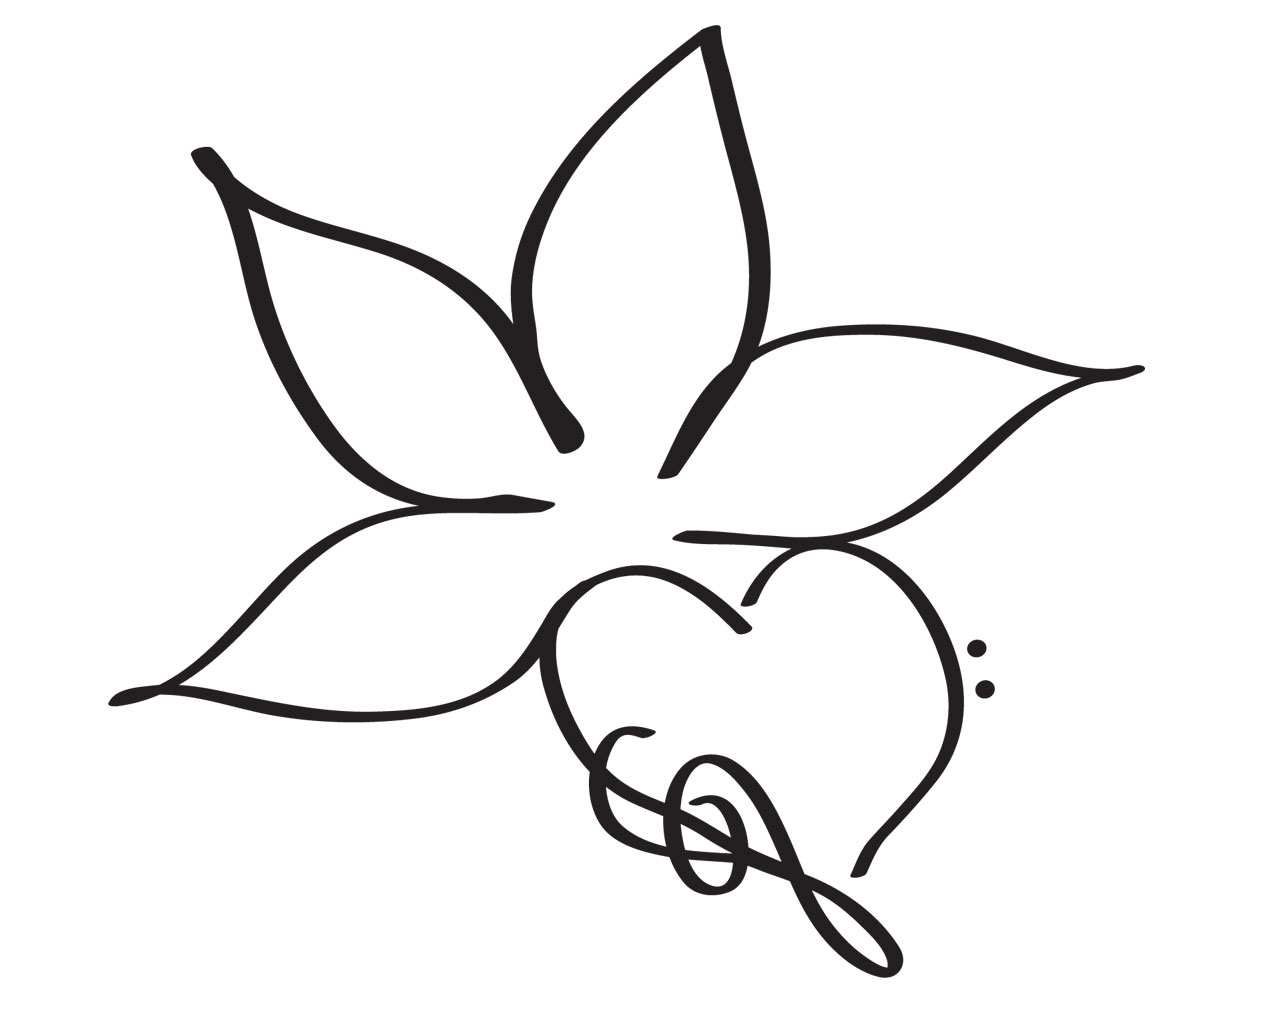 Lotus Flower Line Drawing Free Download Best Lotus Flower Line